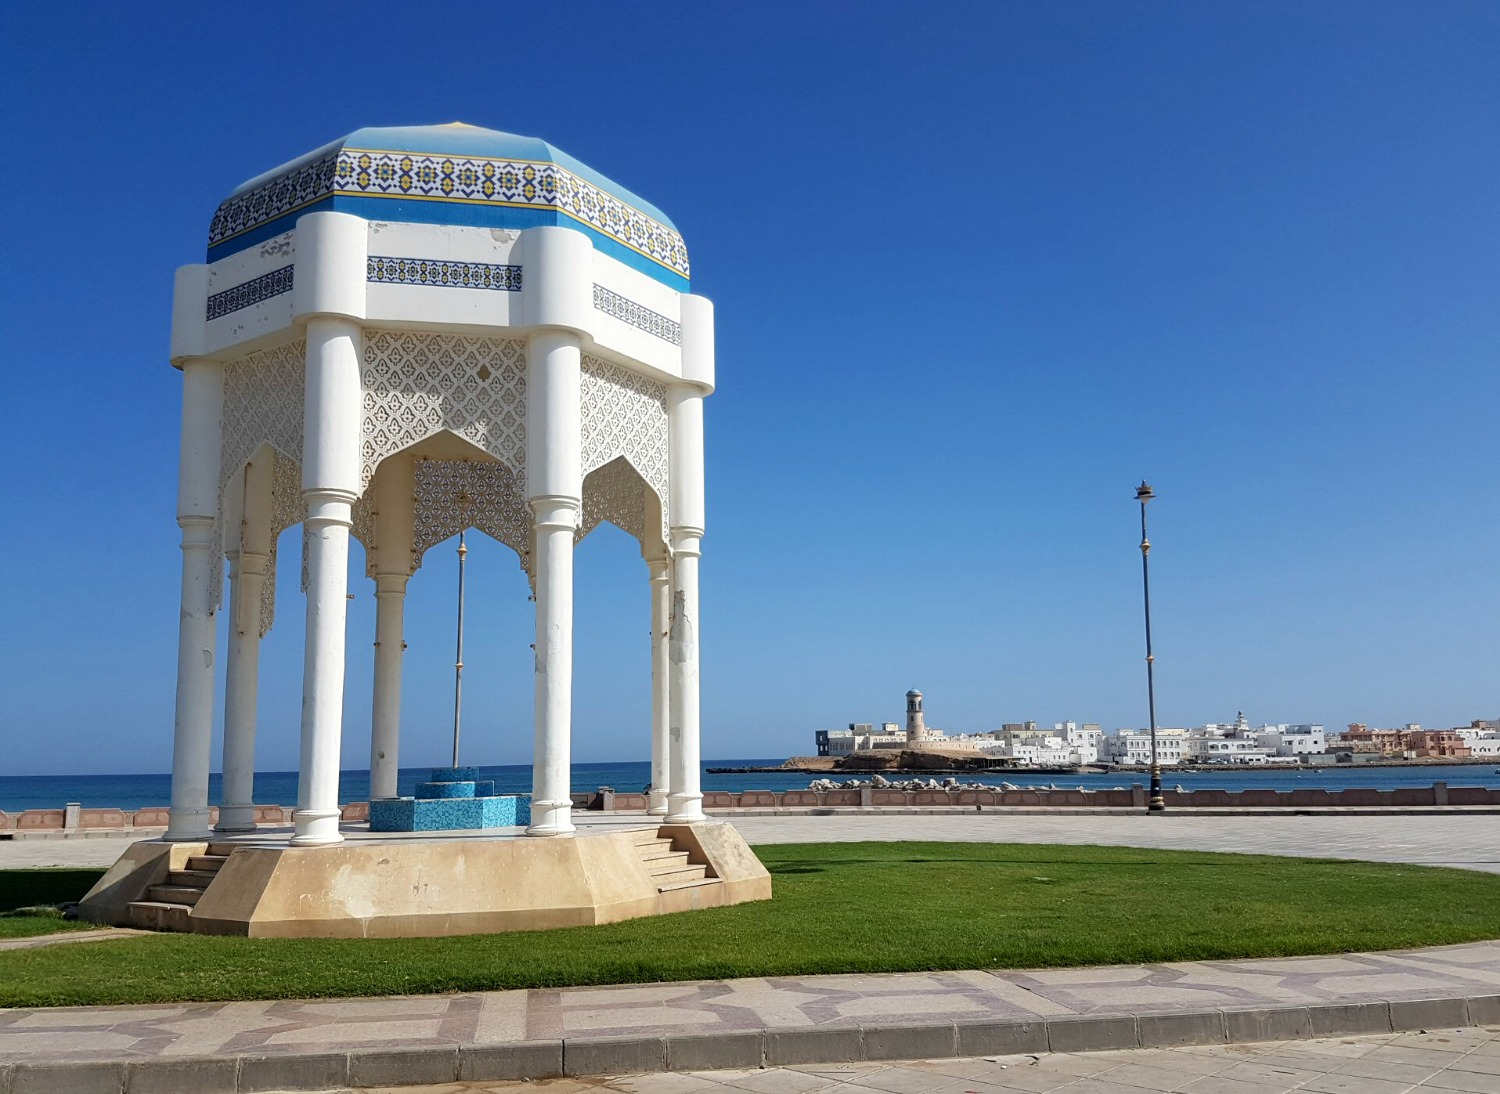 A white and blue pavilion on the Corniche at Sur with the buildings across the water in the distance behind - my nine reasons to visit Oman with kids